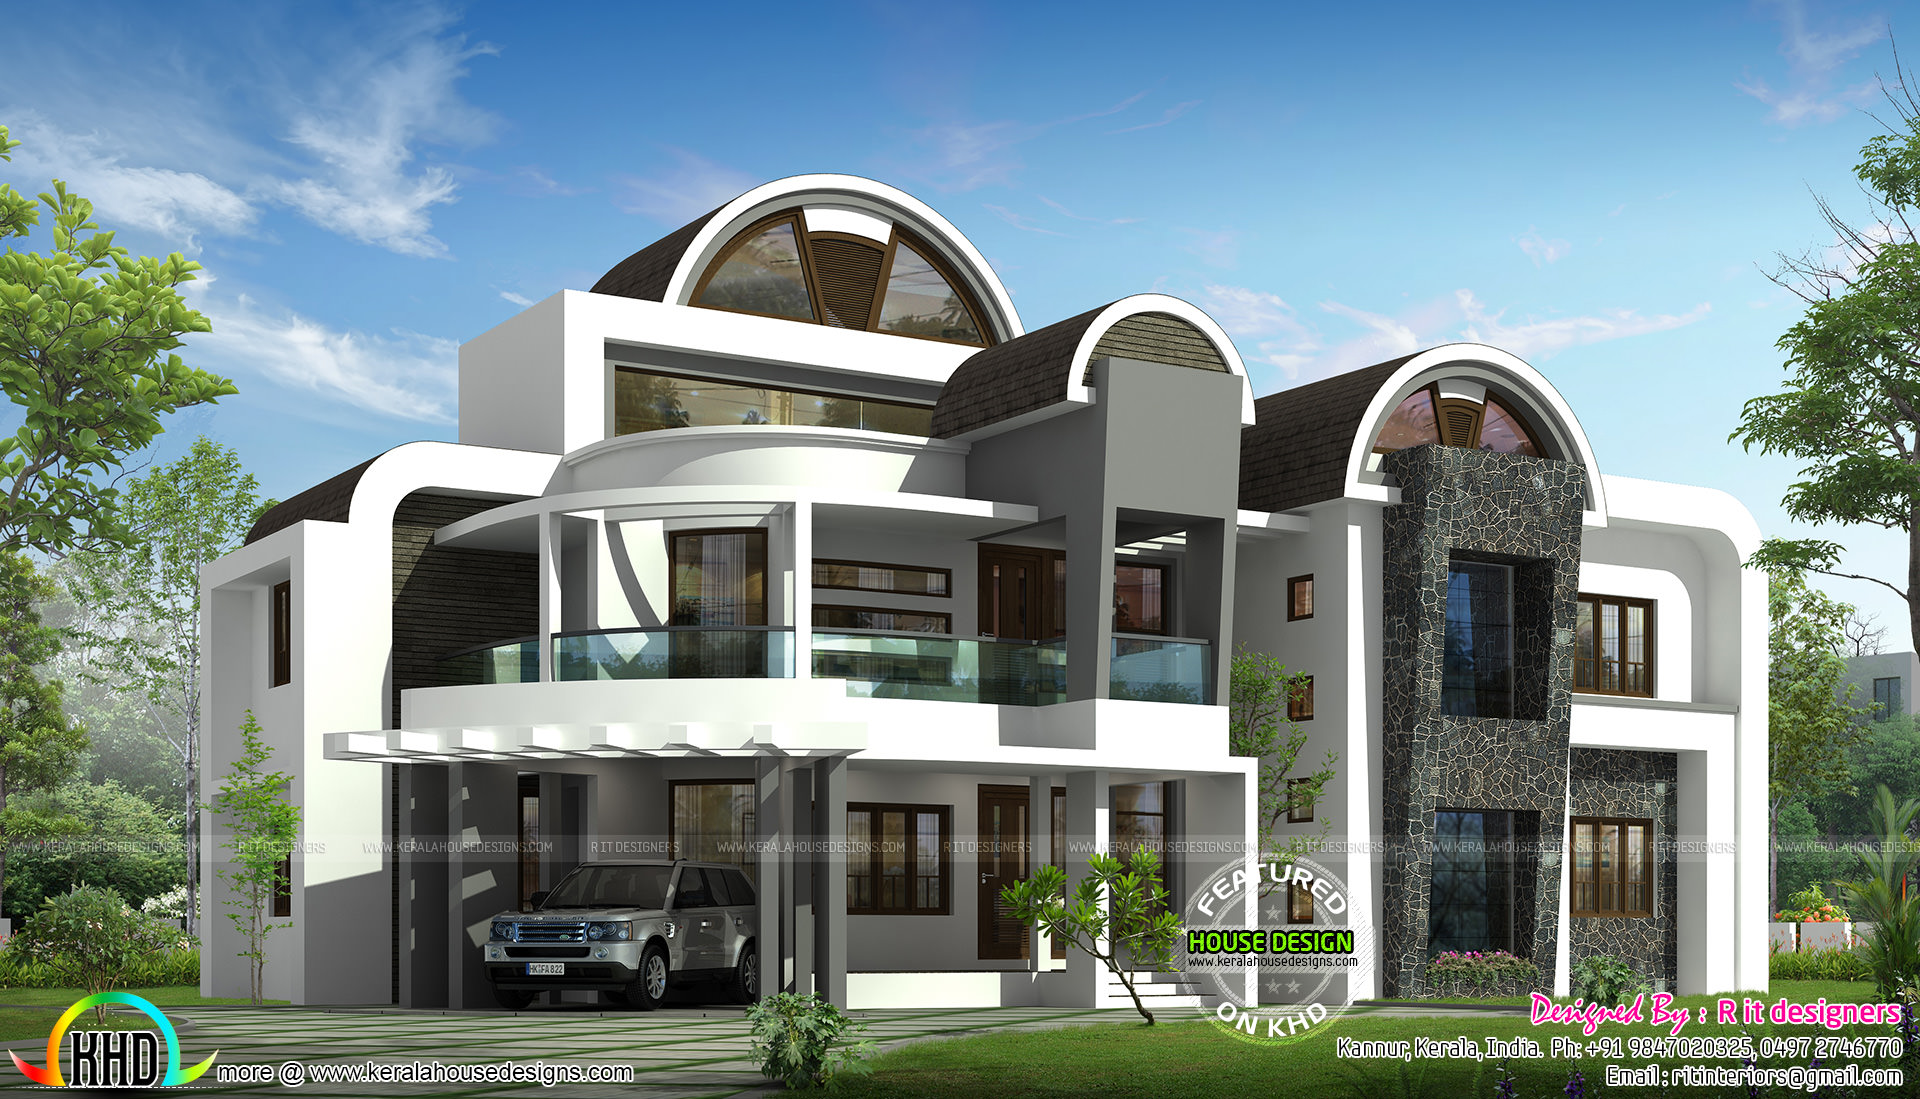 half round roof unique house design kerala home design